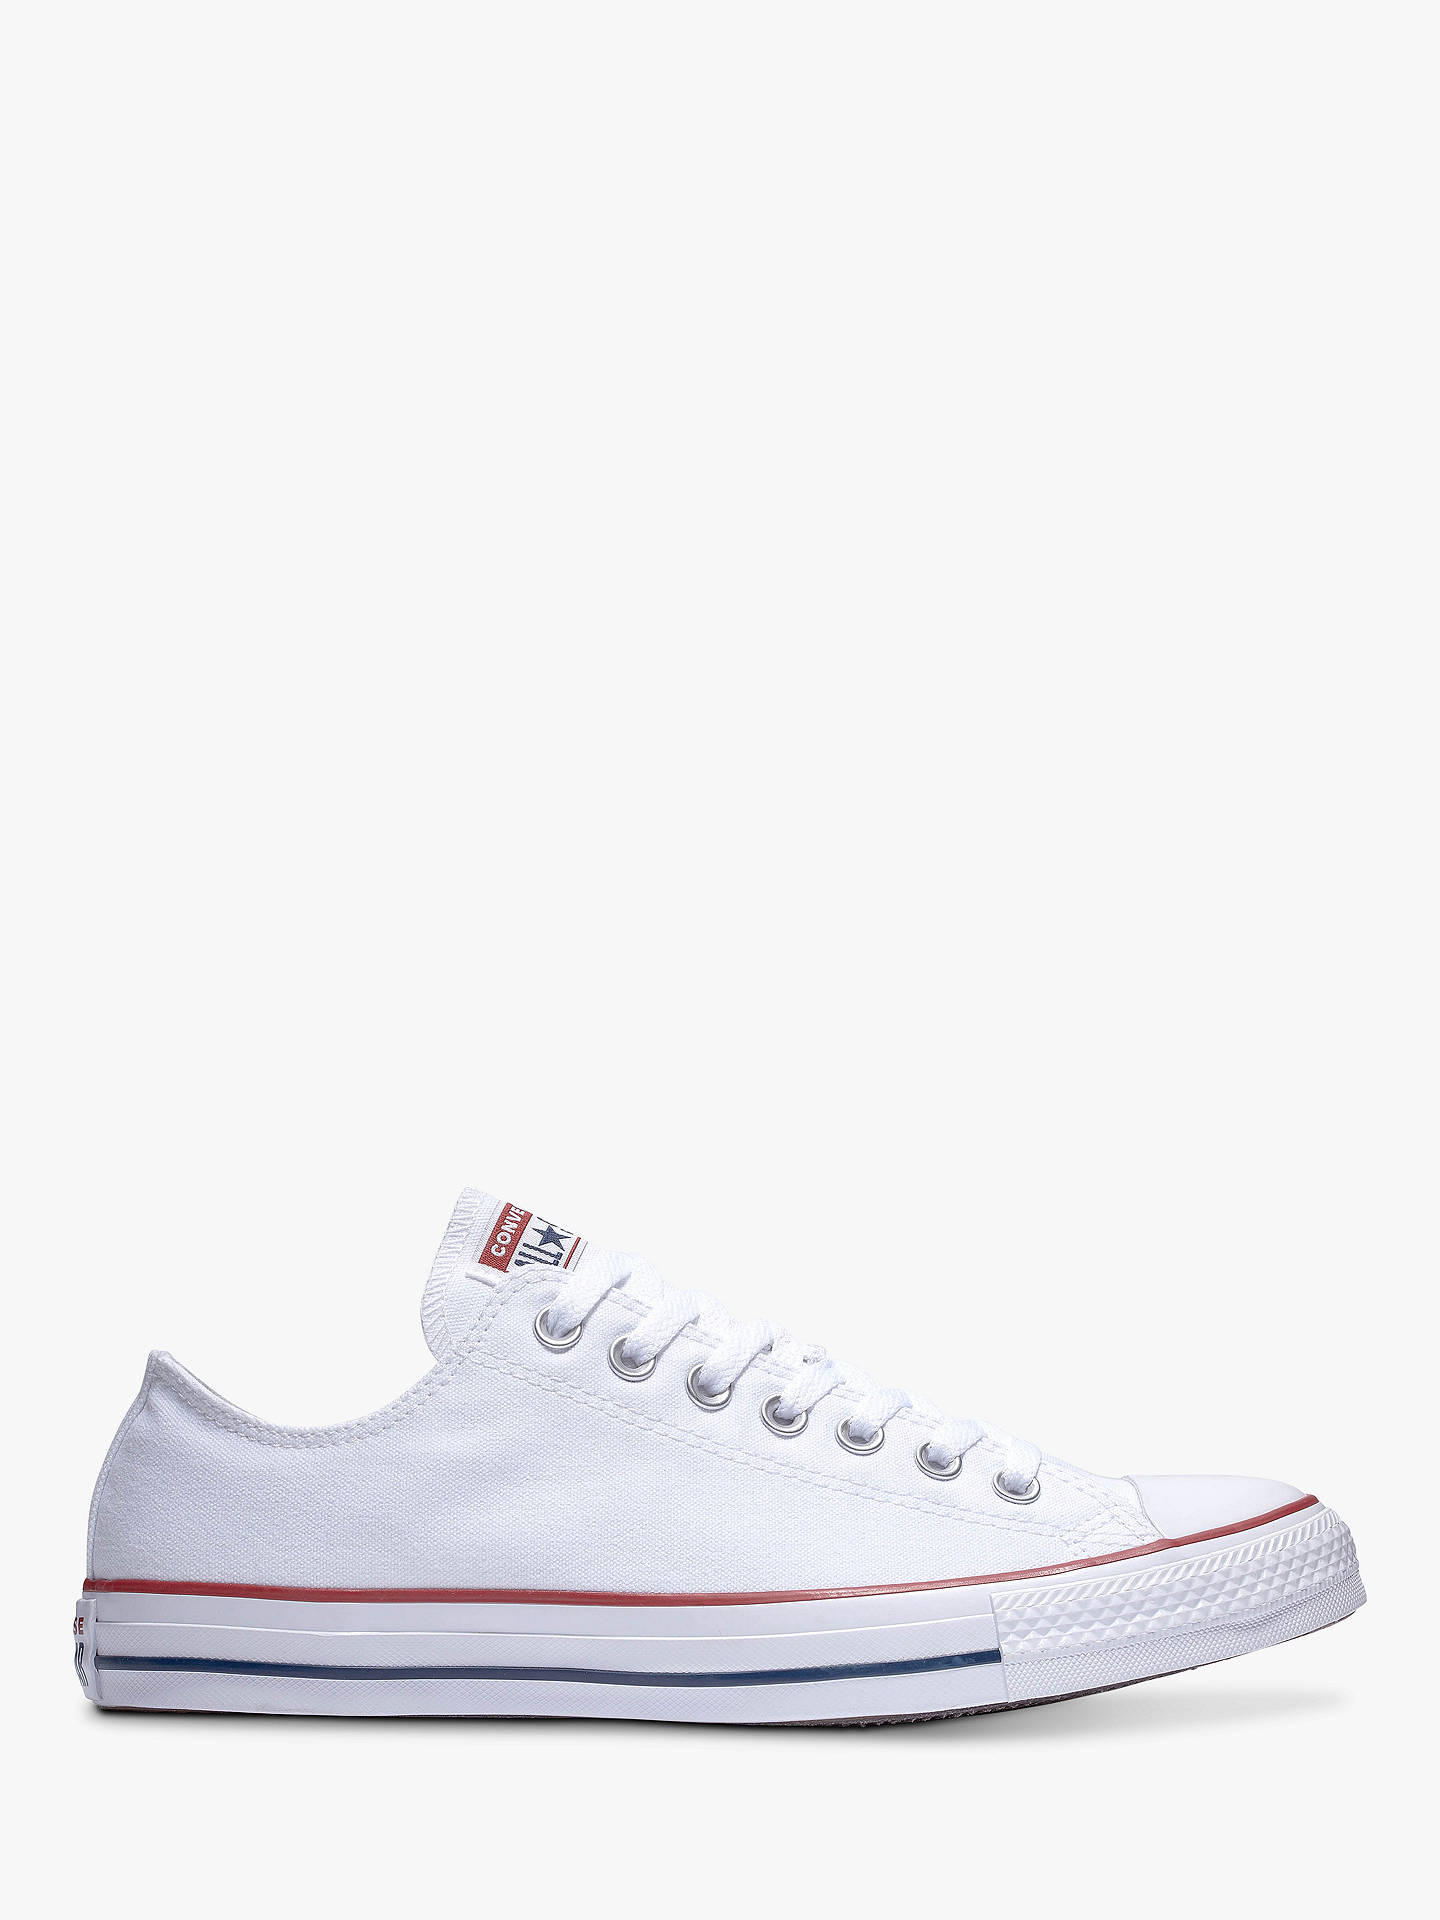 8fb4e3b3edb3 Converse Chuck Taylor All Star Canvas Ox Low-Top Trainers at John ...